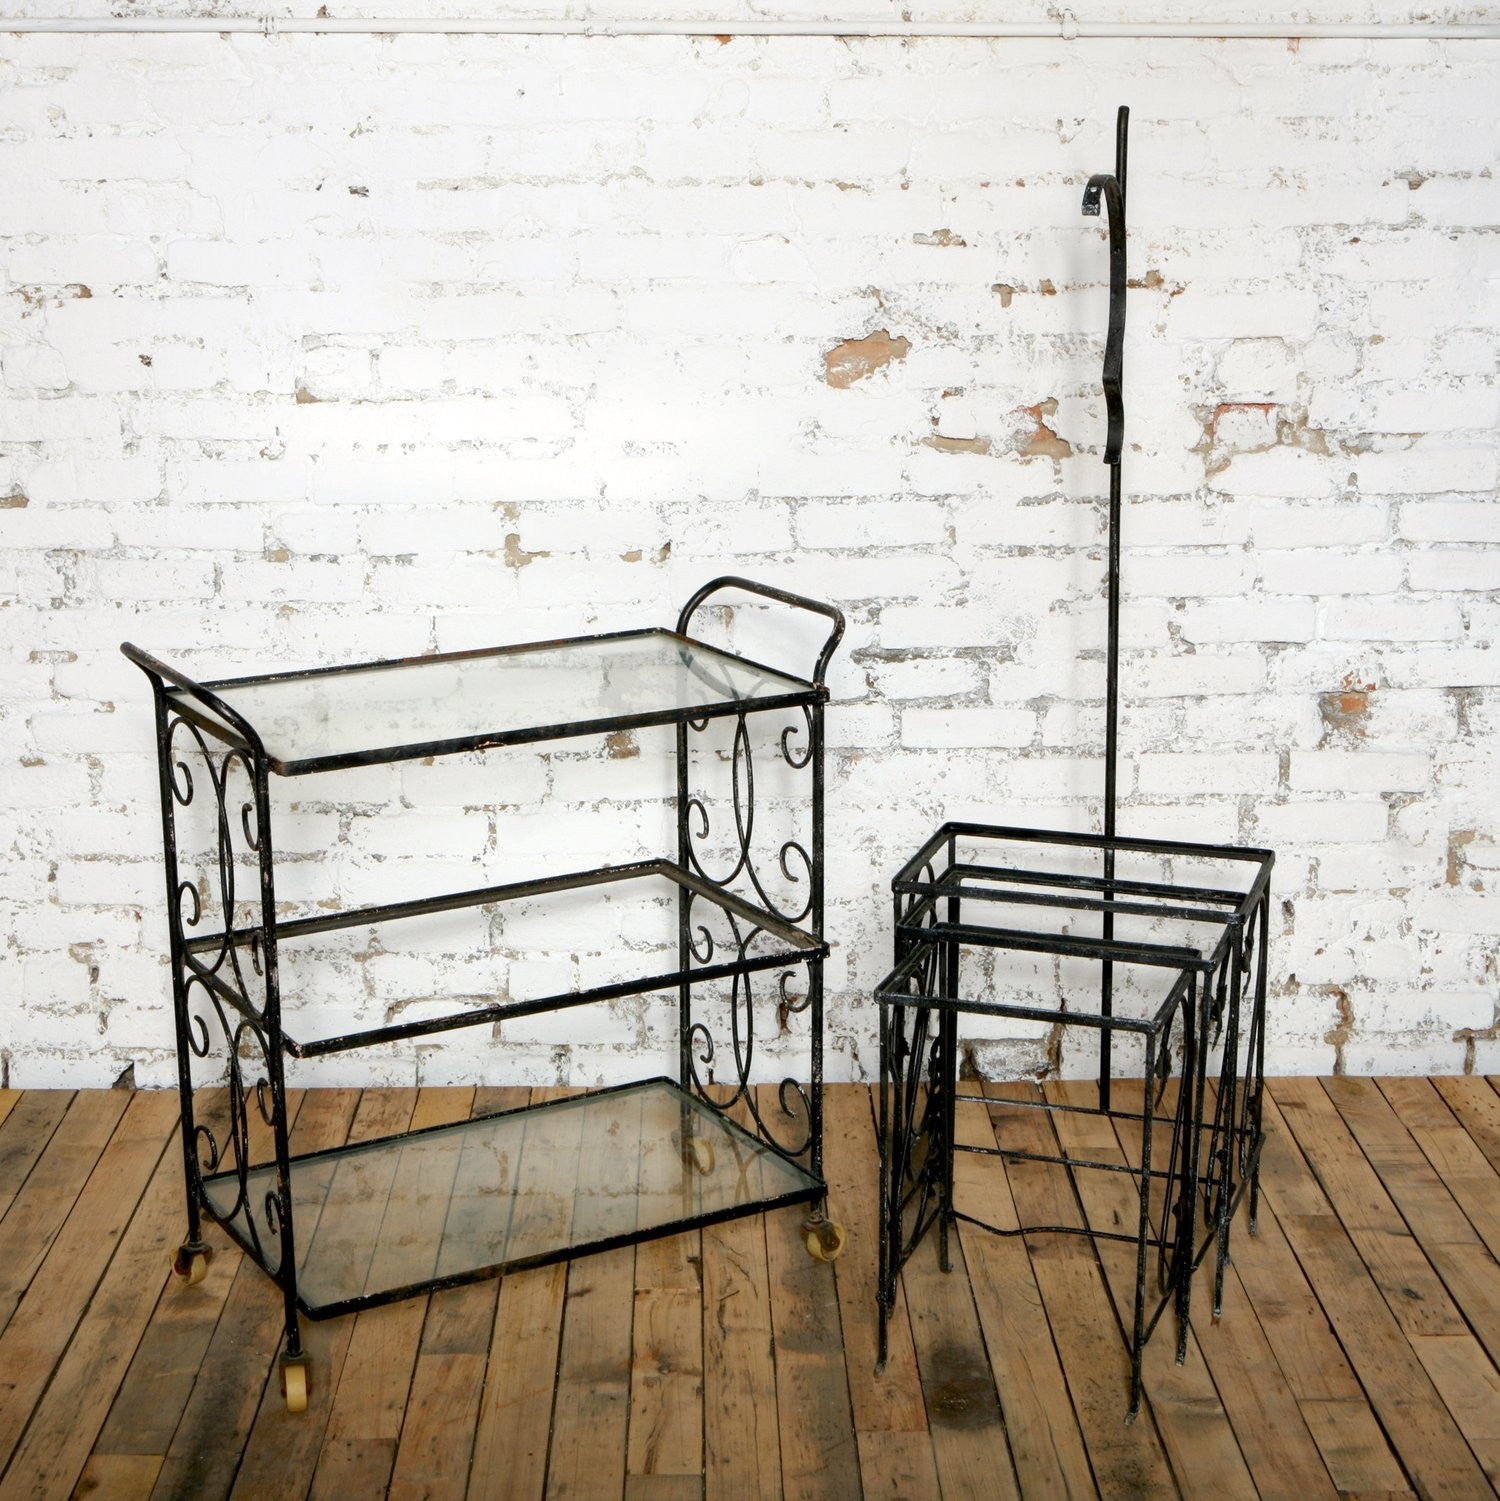 Painted Black Iron Patio Nesting Tables Painted Black Iron Patio Nesting  Tables